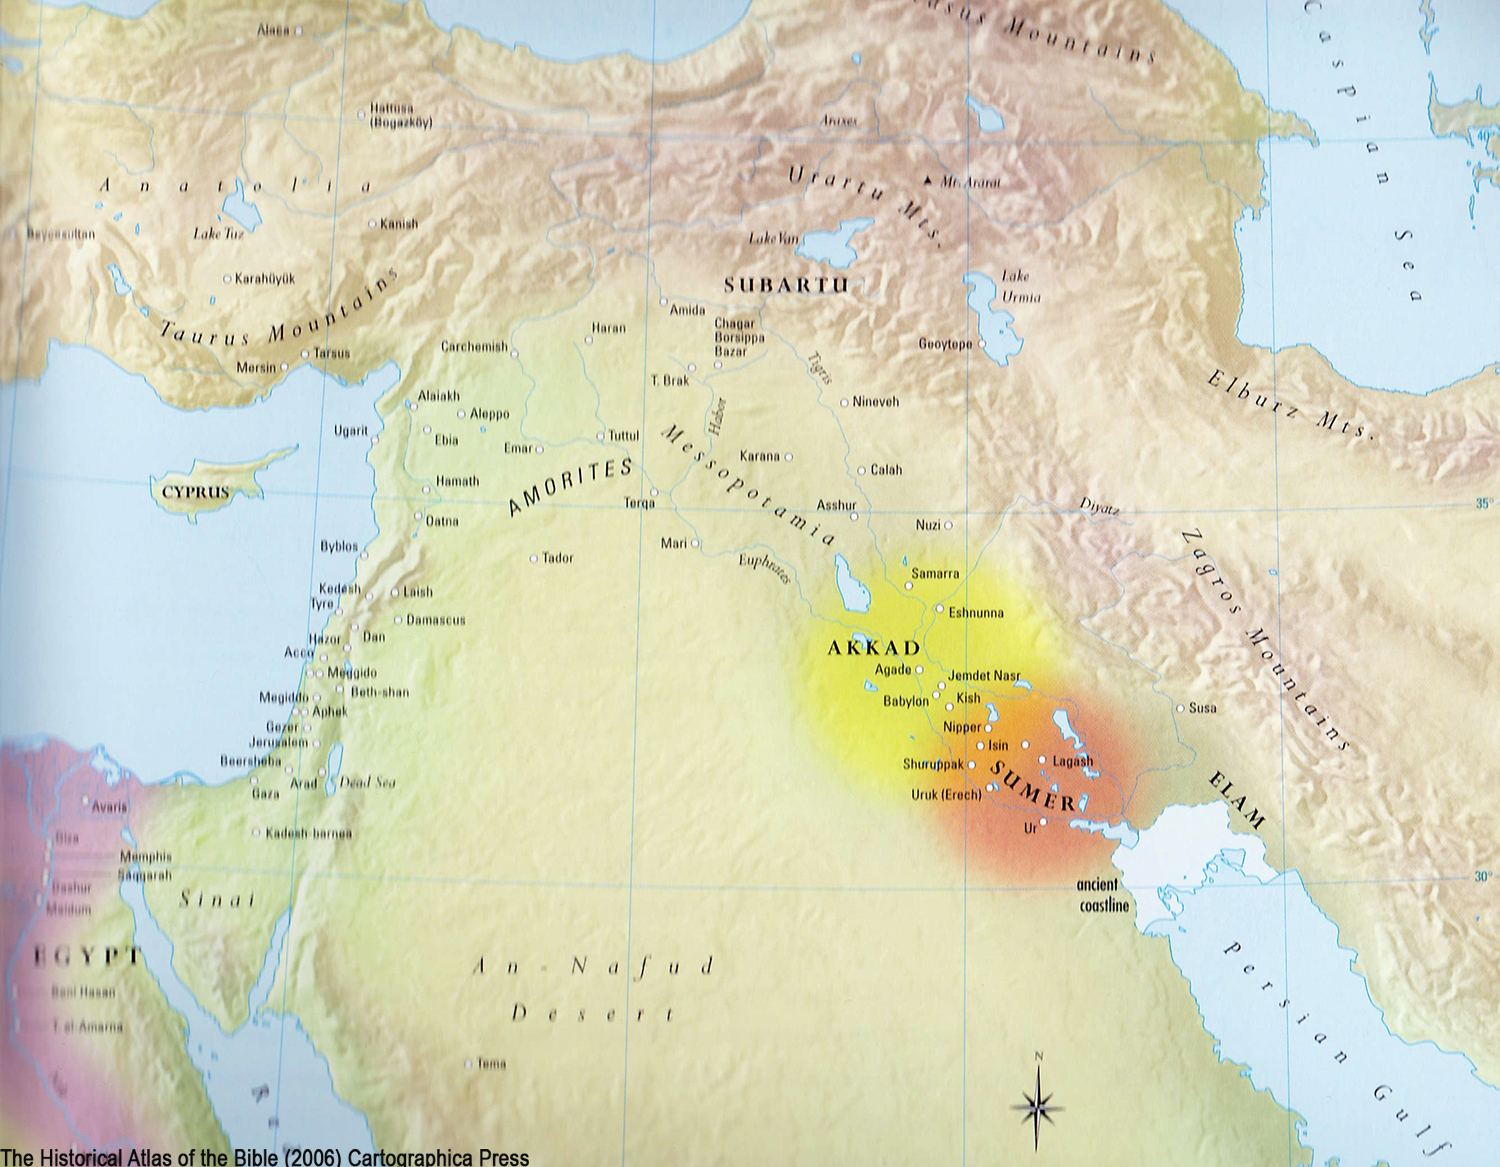 ancient maps, Ancient Middle East map, Bible map, early civilizations